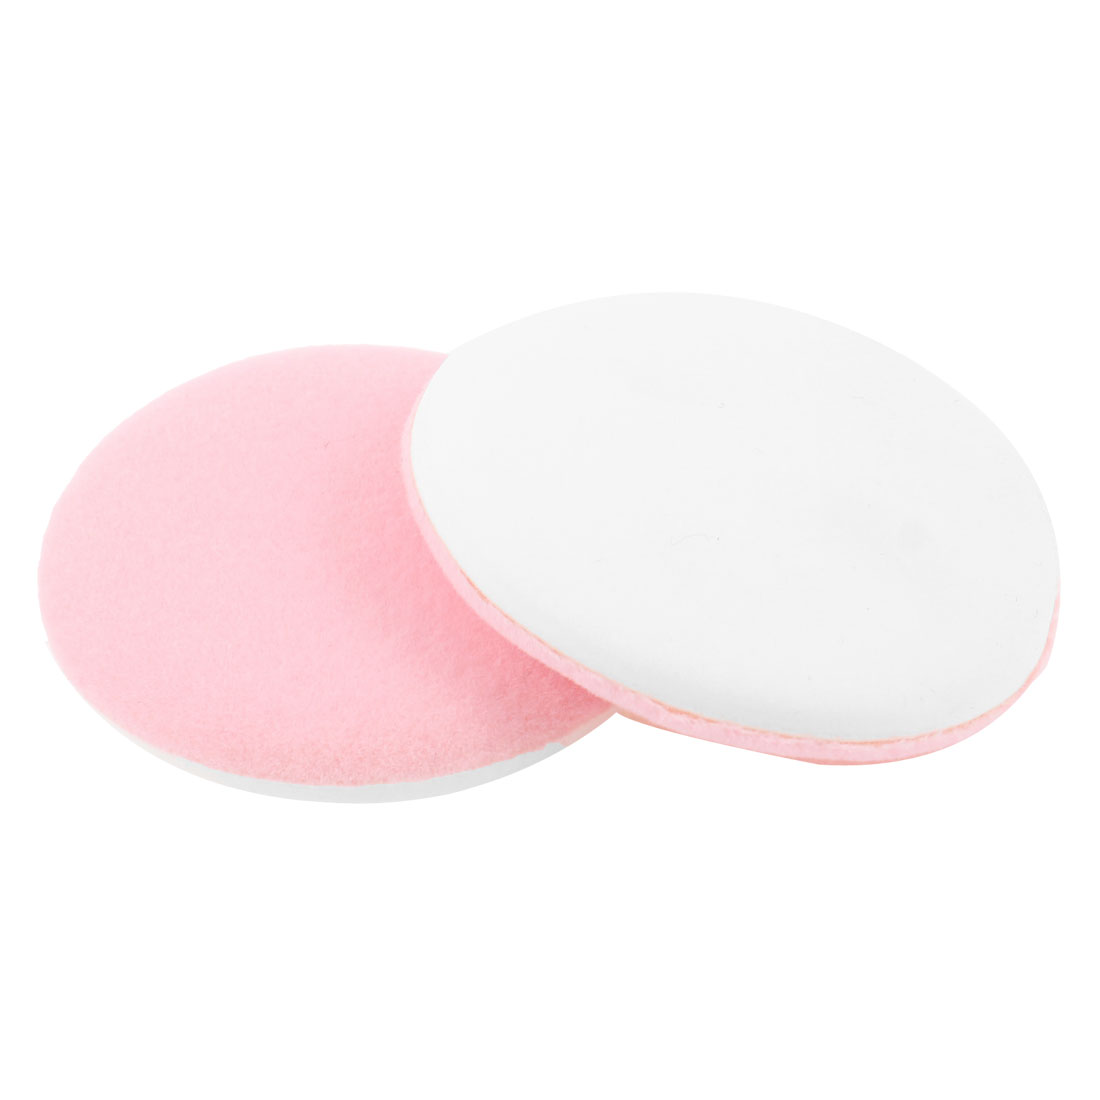 2 Pcs Women Round Face Care Powder Puff Cosmetic Makeup Sponge White Pink